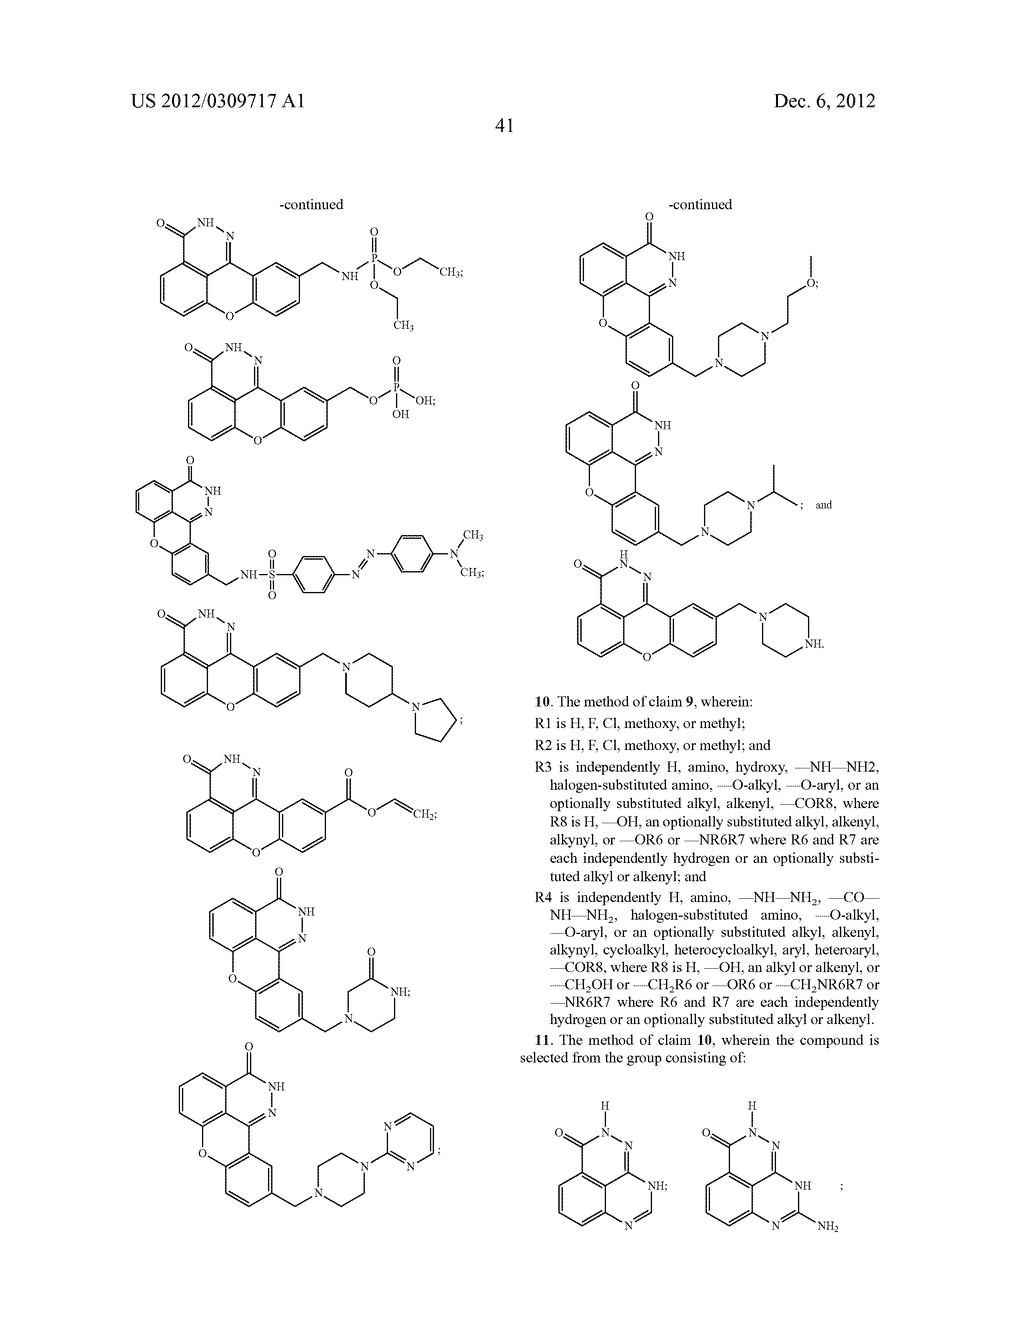 COMPOUNDS, METHODS AND PHARMACEUTICAL COMPOSITIONS FOR INHIBITING PARP - diagram, schematic, and image 43